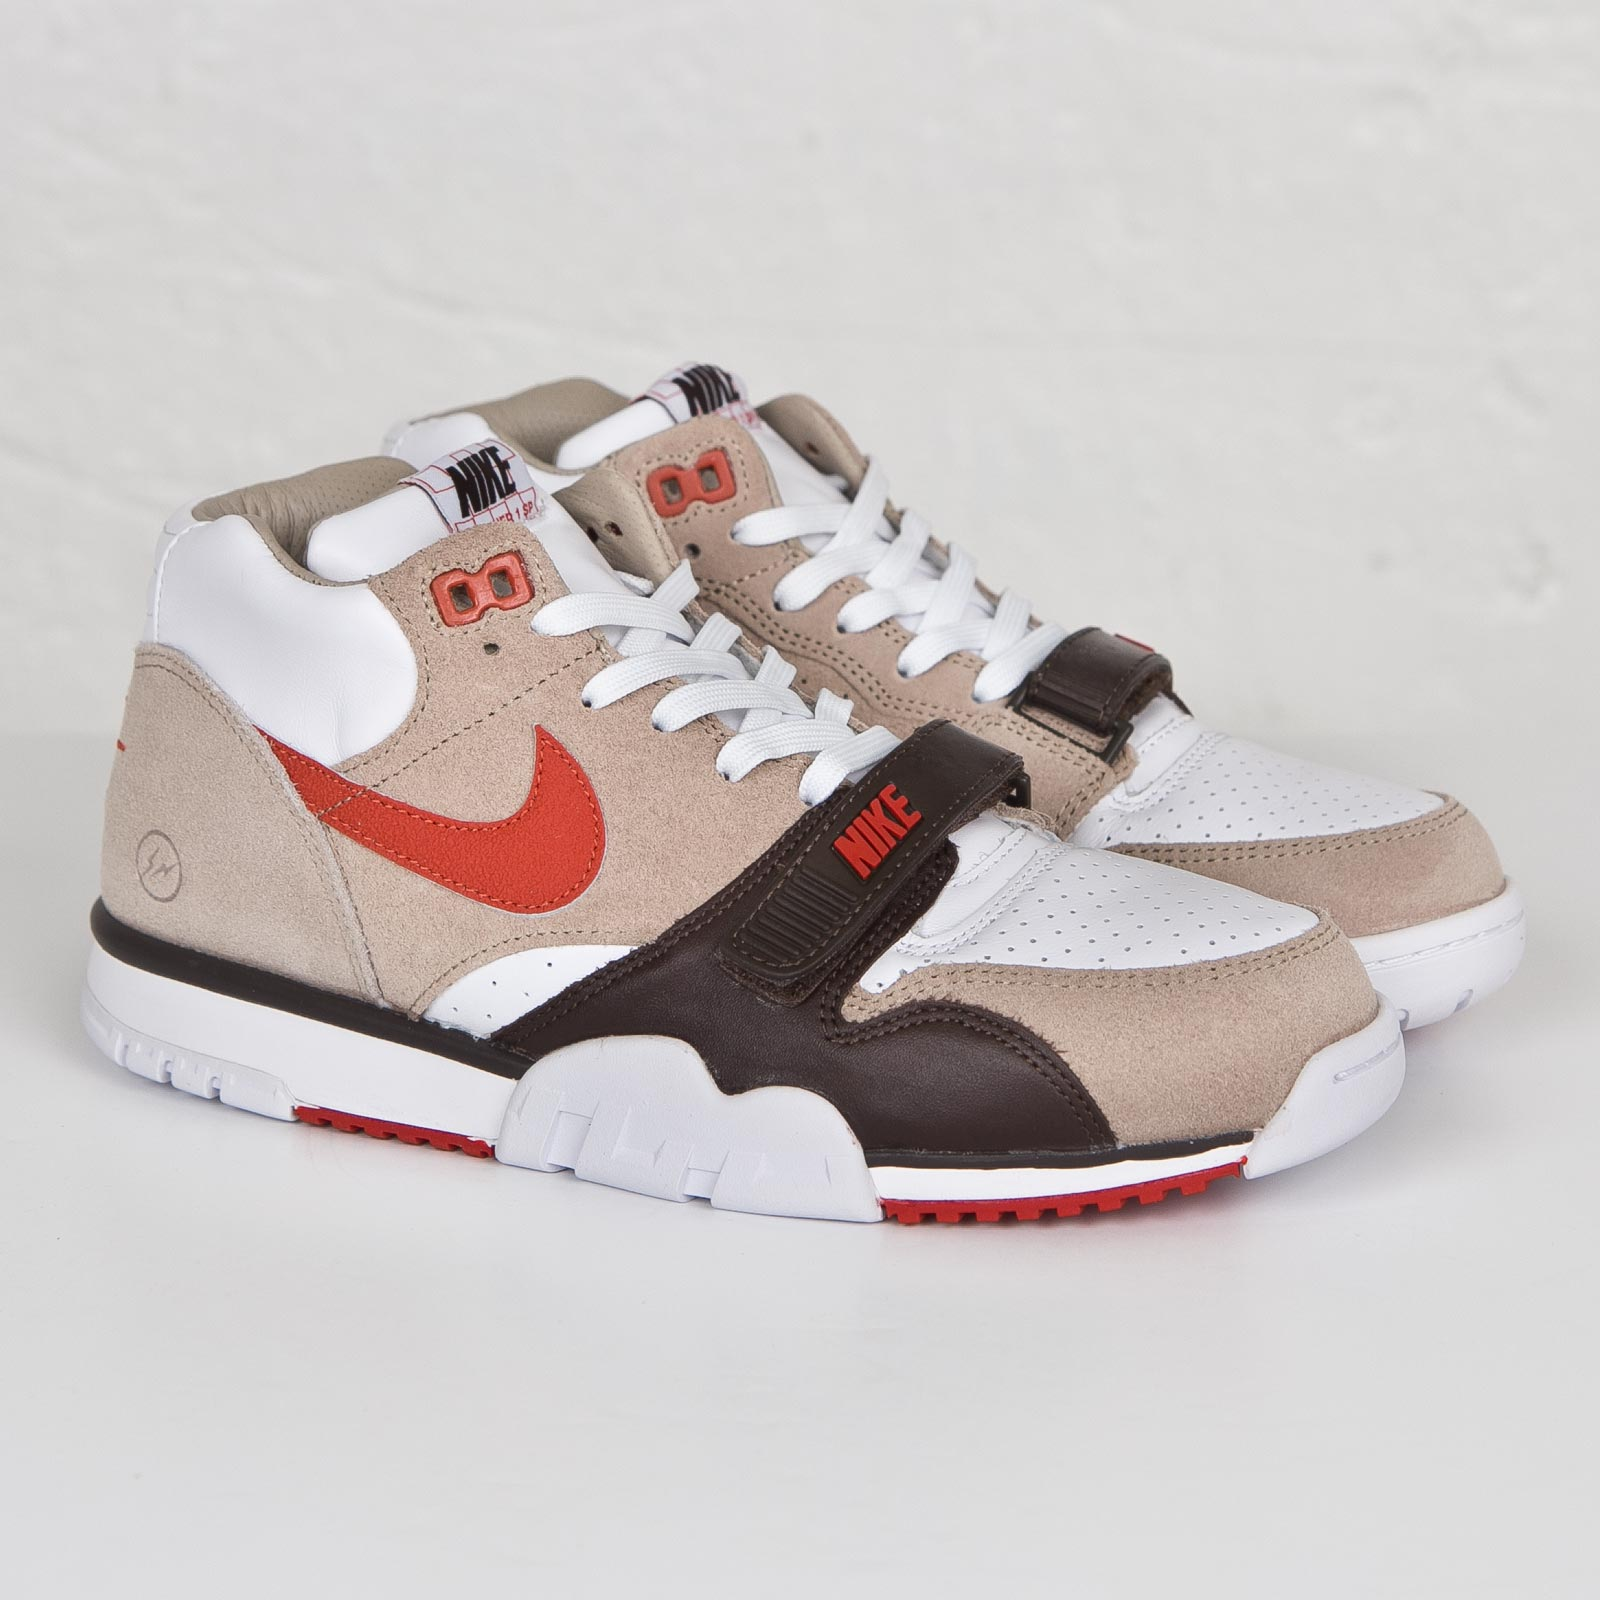 cecfc85457a Nike Air Trainer 1 Mid SP   Fragment - 806942-282 - Sneakersnstuff ...